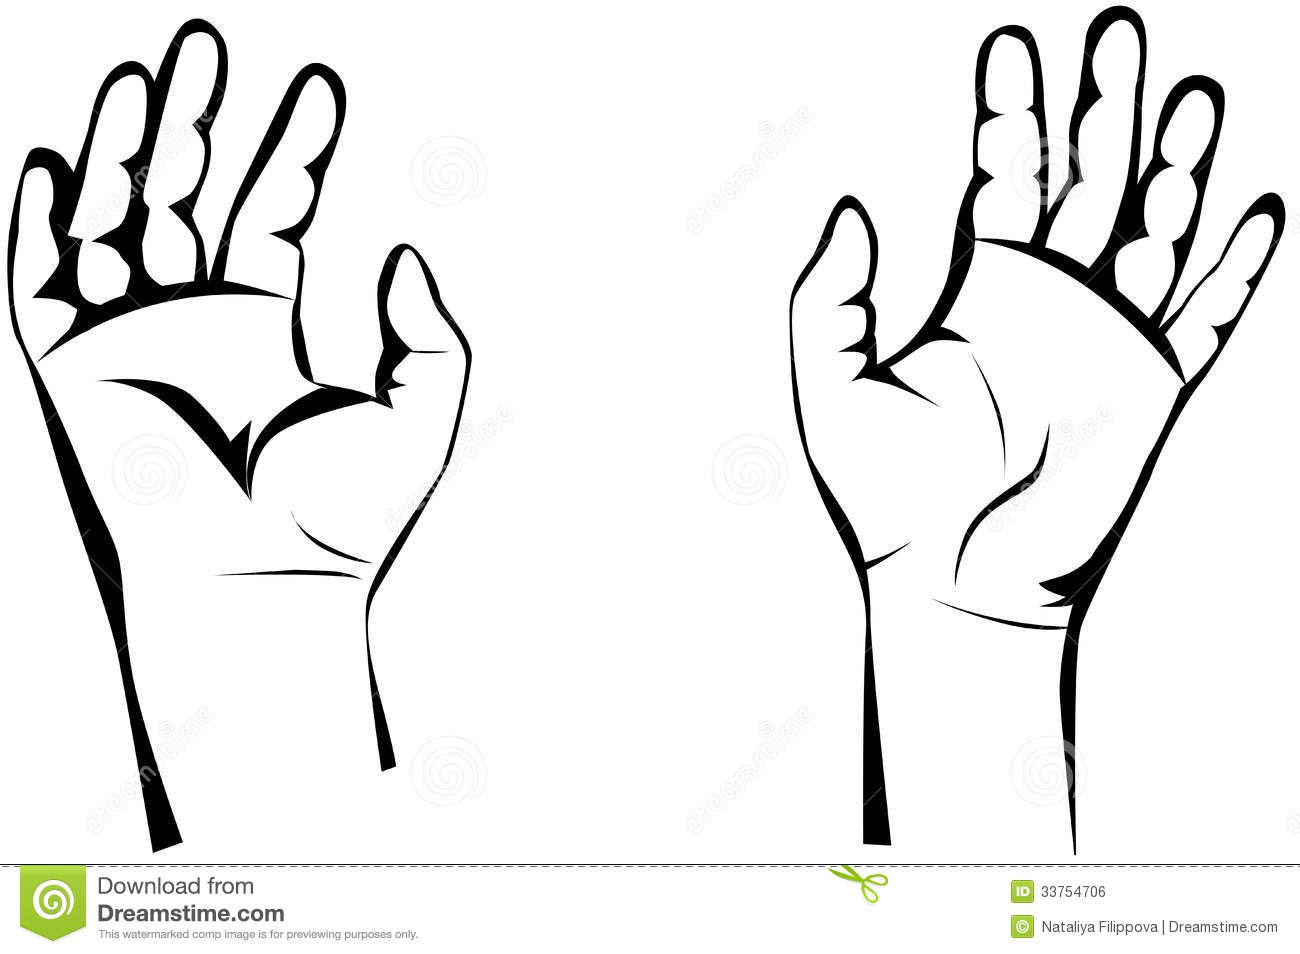 Black and white clipart of hands over hands banner black and white download 84+ Hands Clipart Black And White | ClipartLook banner black and white download